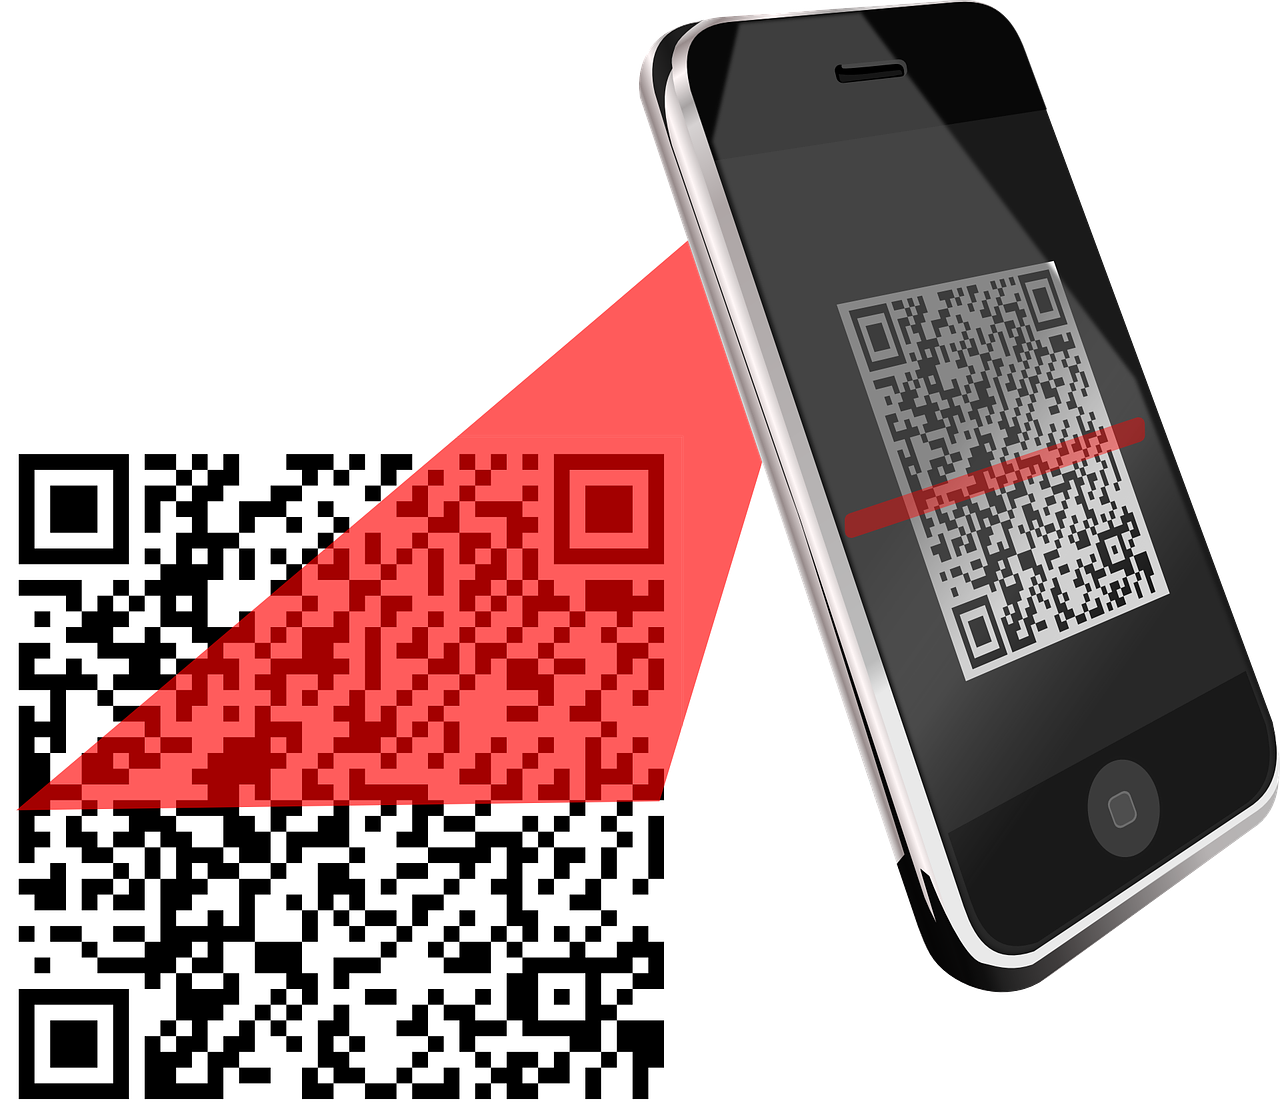 Image of smartphone with QR code